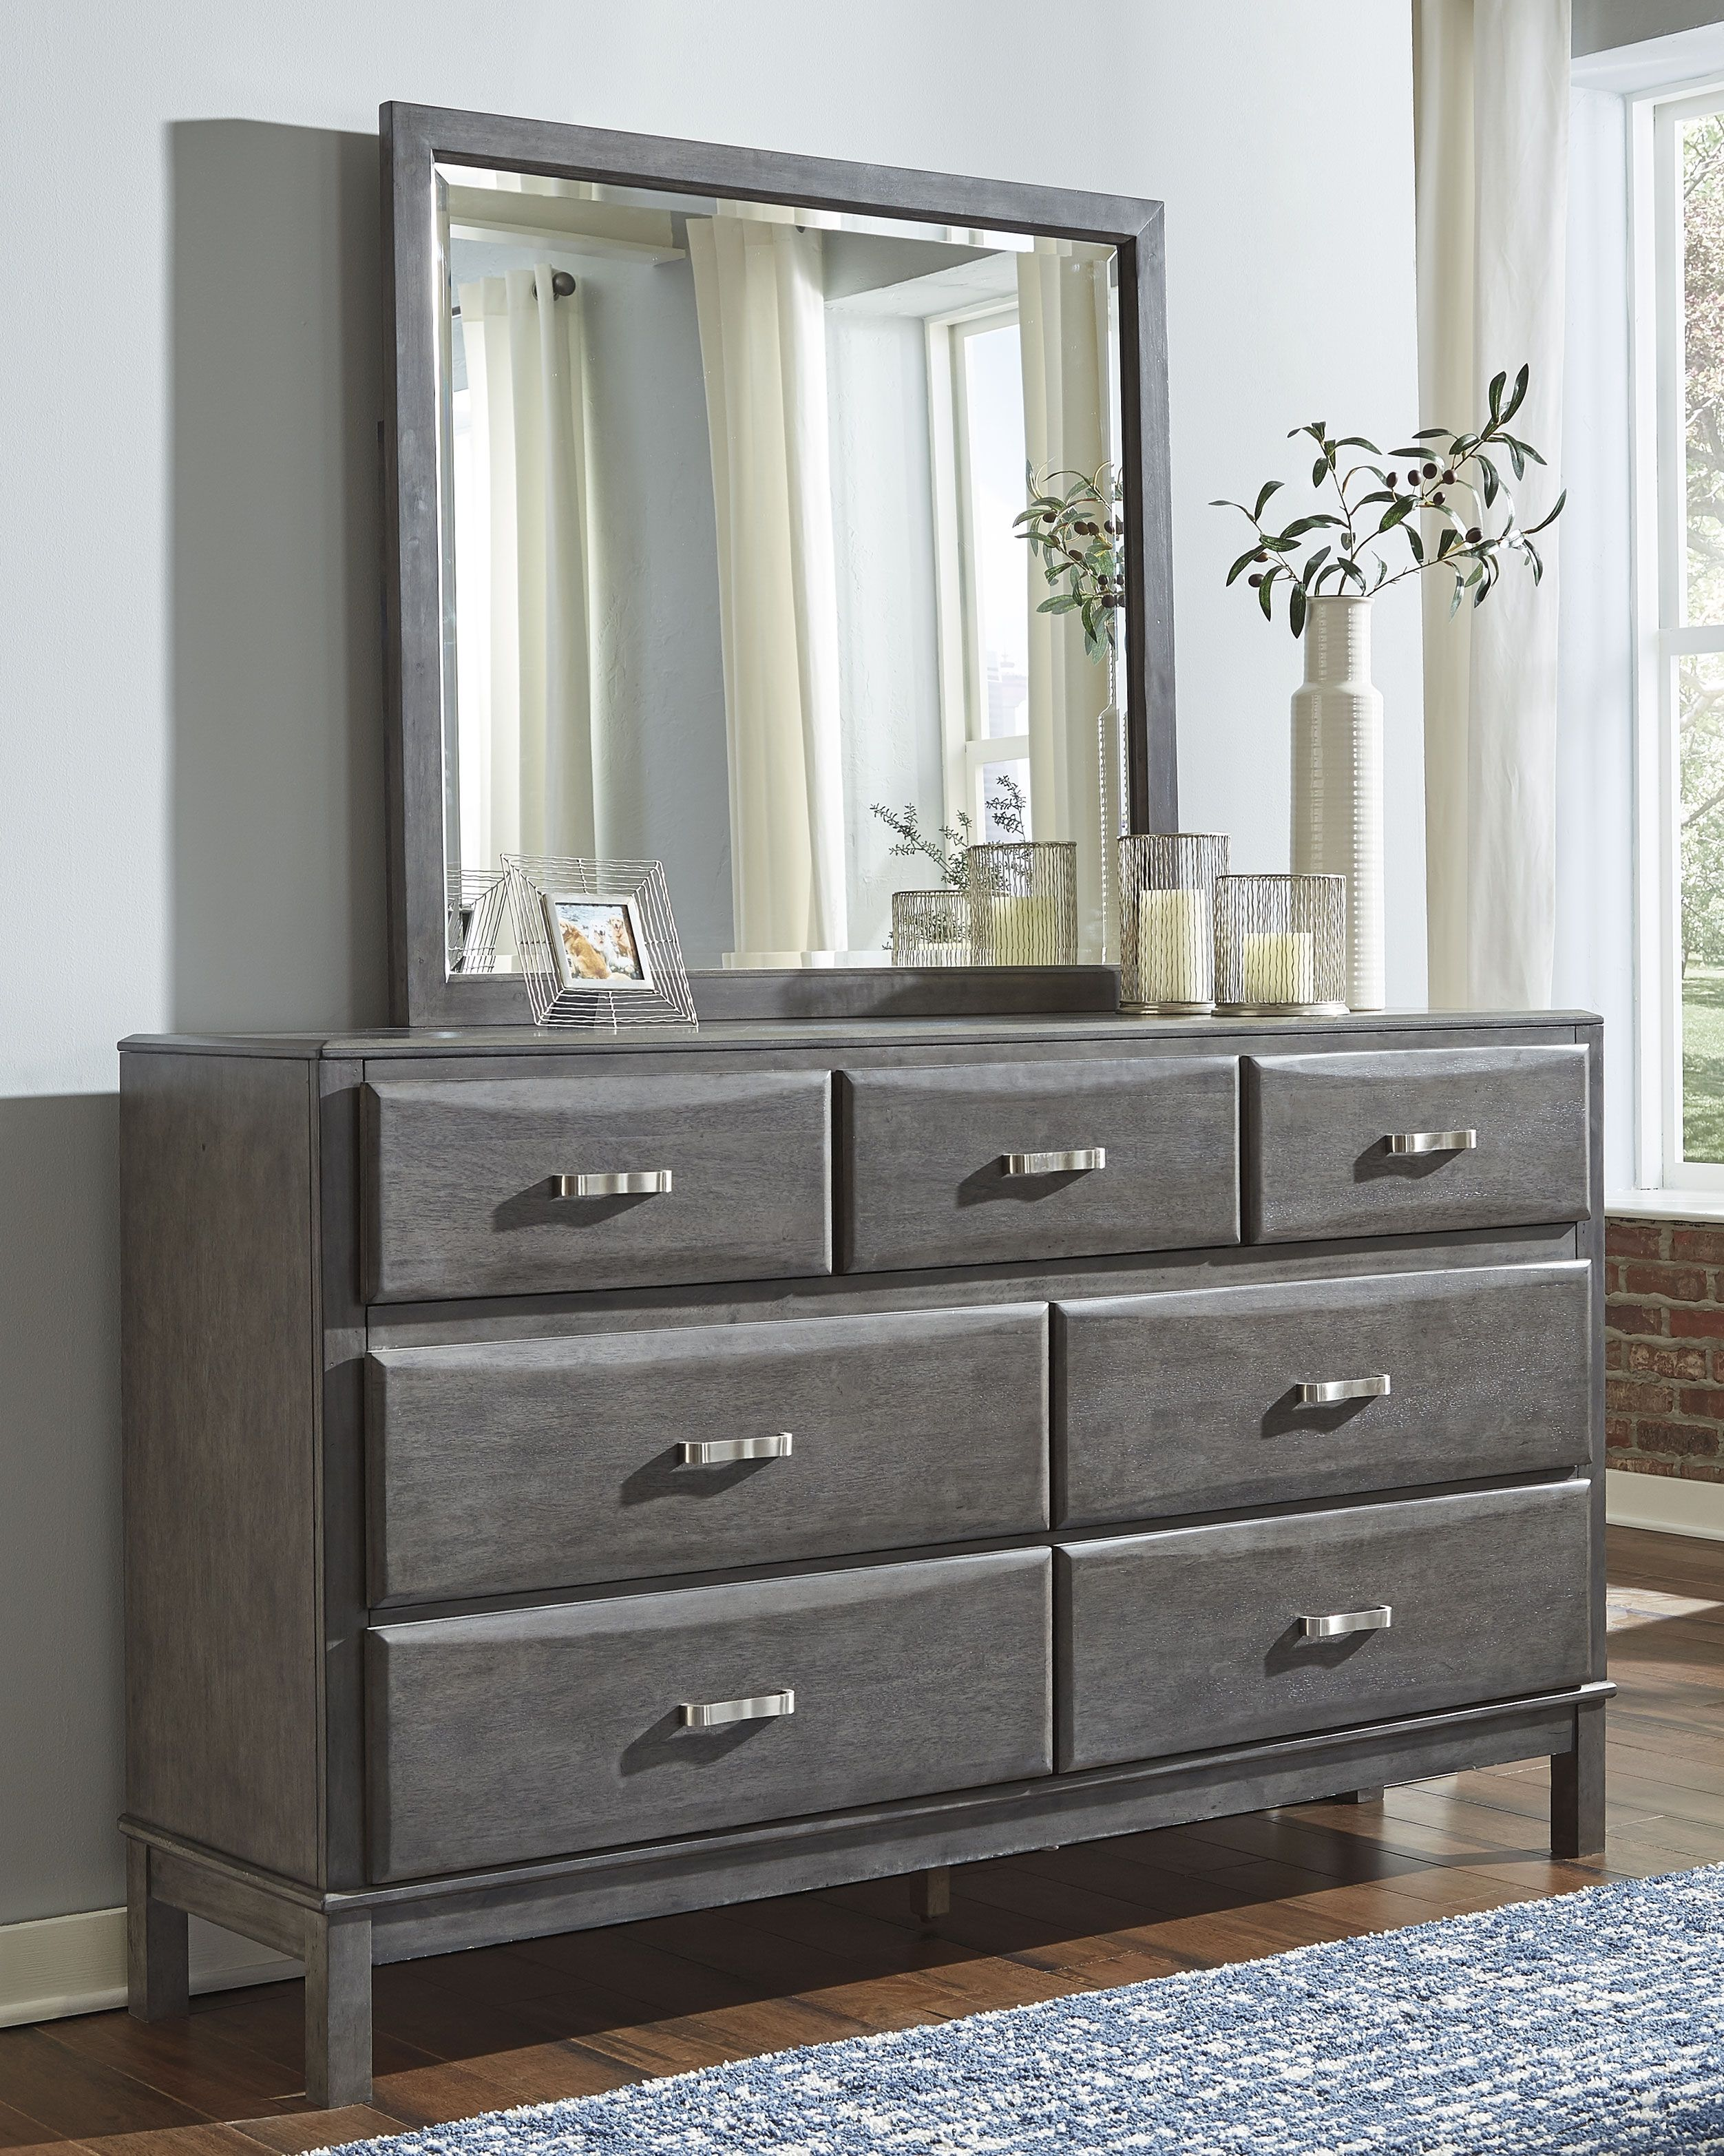 Caitbrook Dresser And Mirror Gray In 2020 Furniture